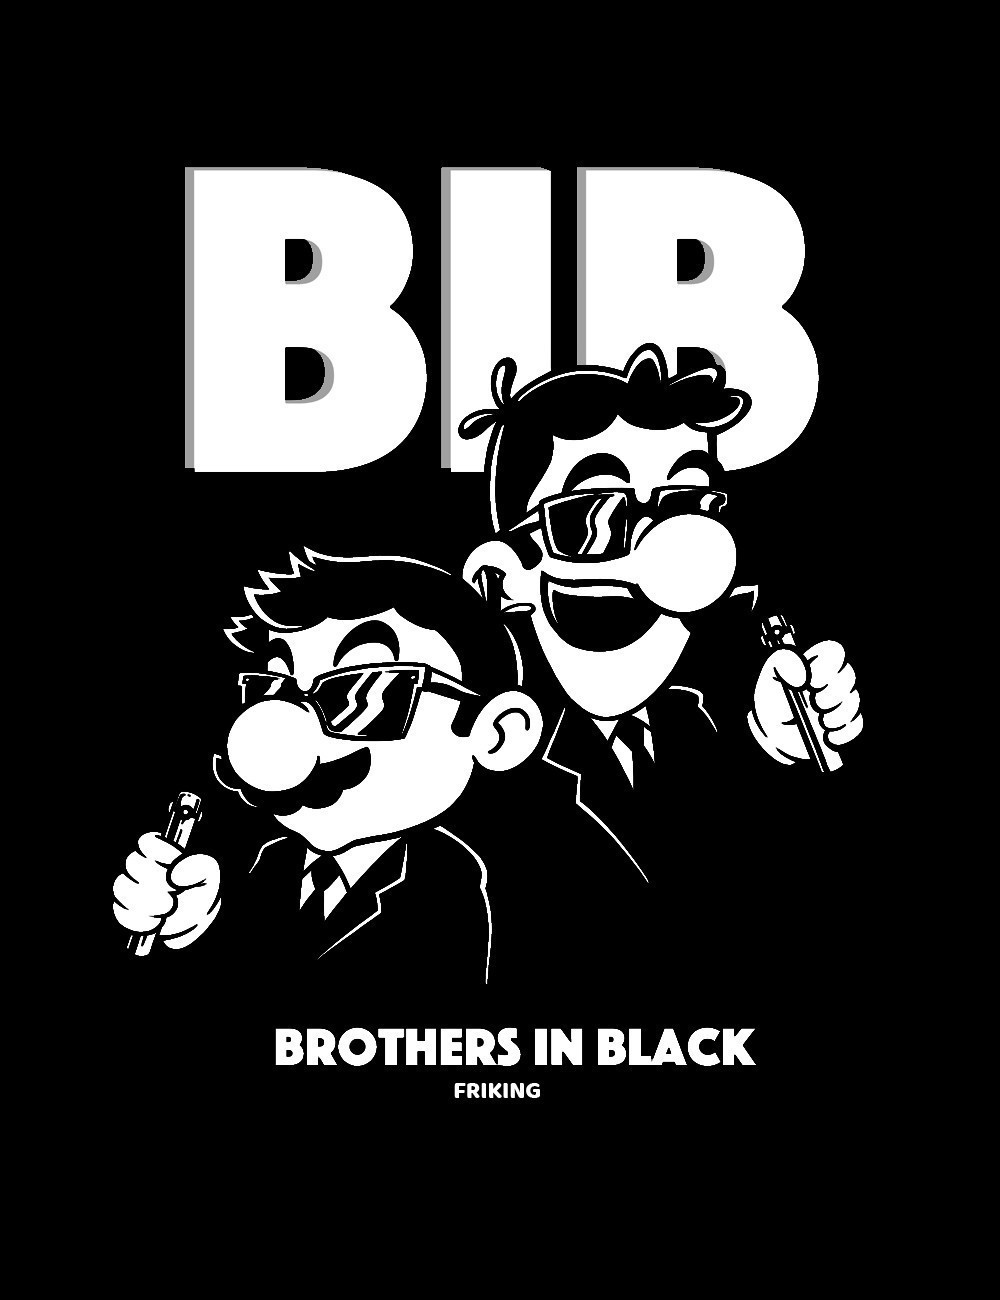 Brothers in black